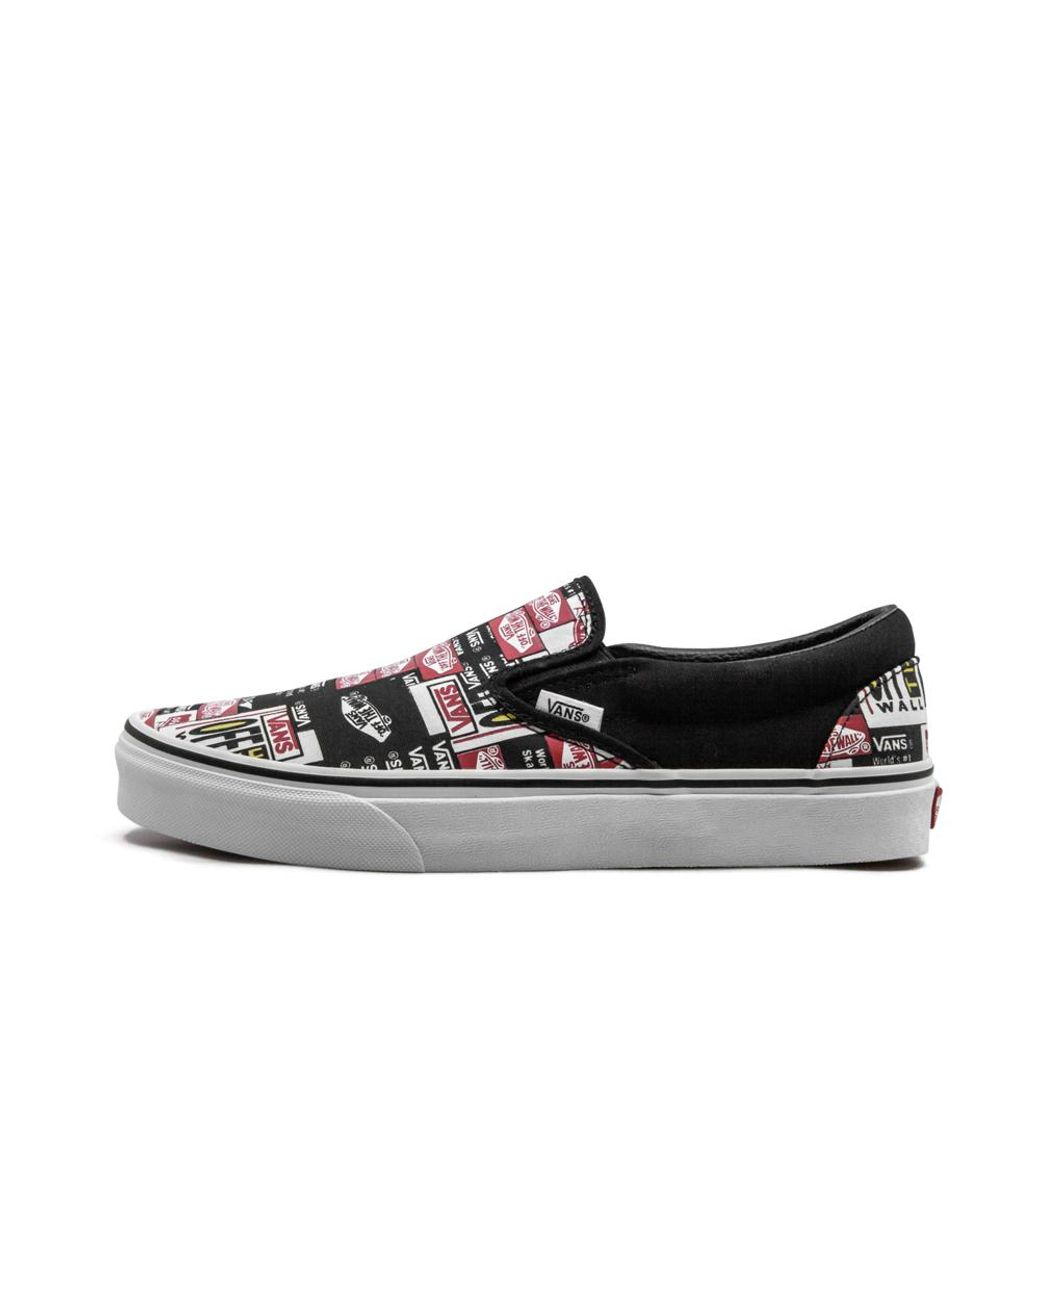 Vans Classic Slip-on Shoes - Size 4 for